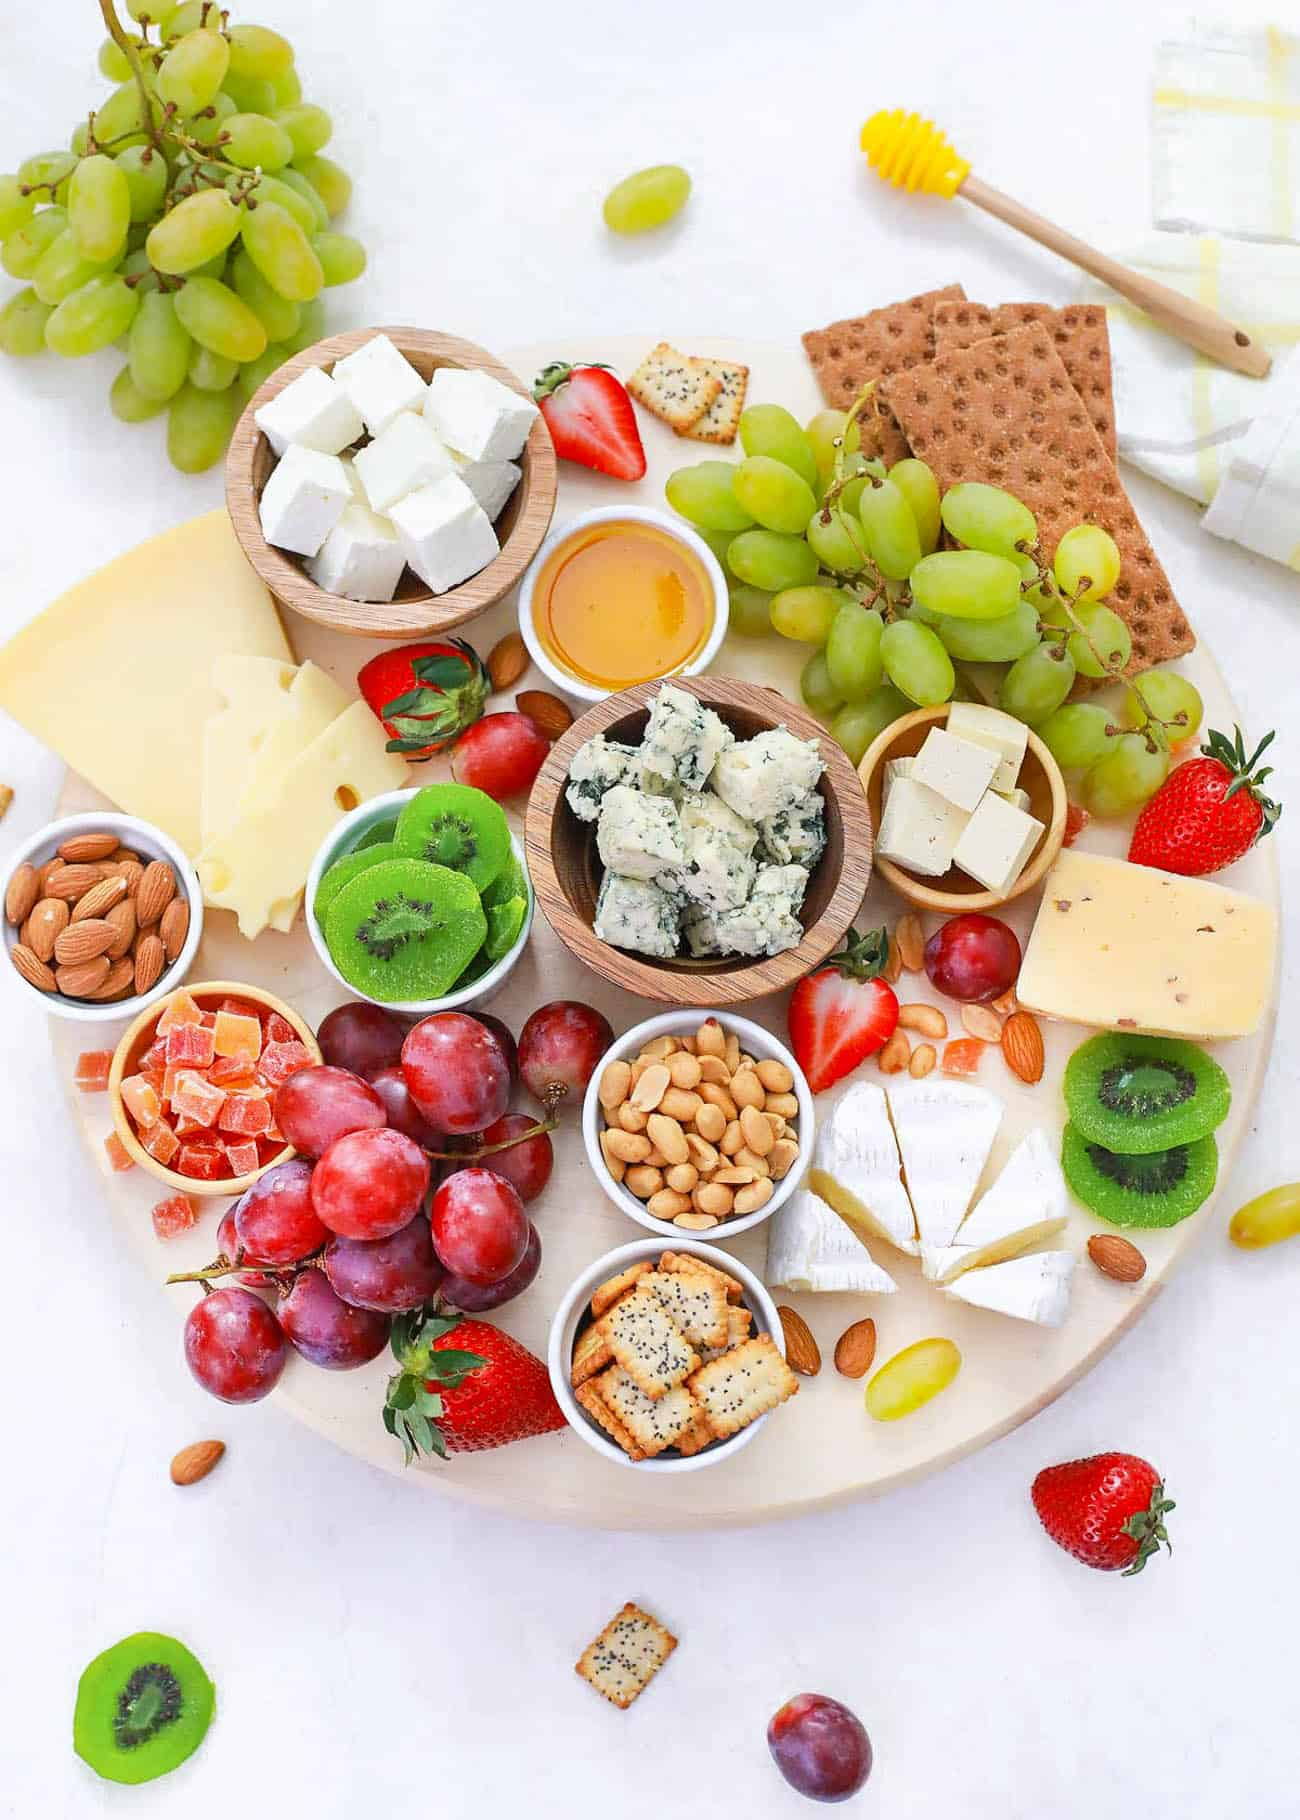 vegetarian cheese board served on a wooden platter with cheeses, fruits, nuts, condiments, crackers